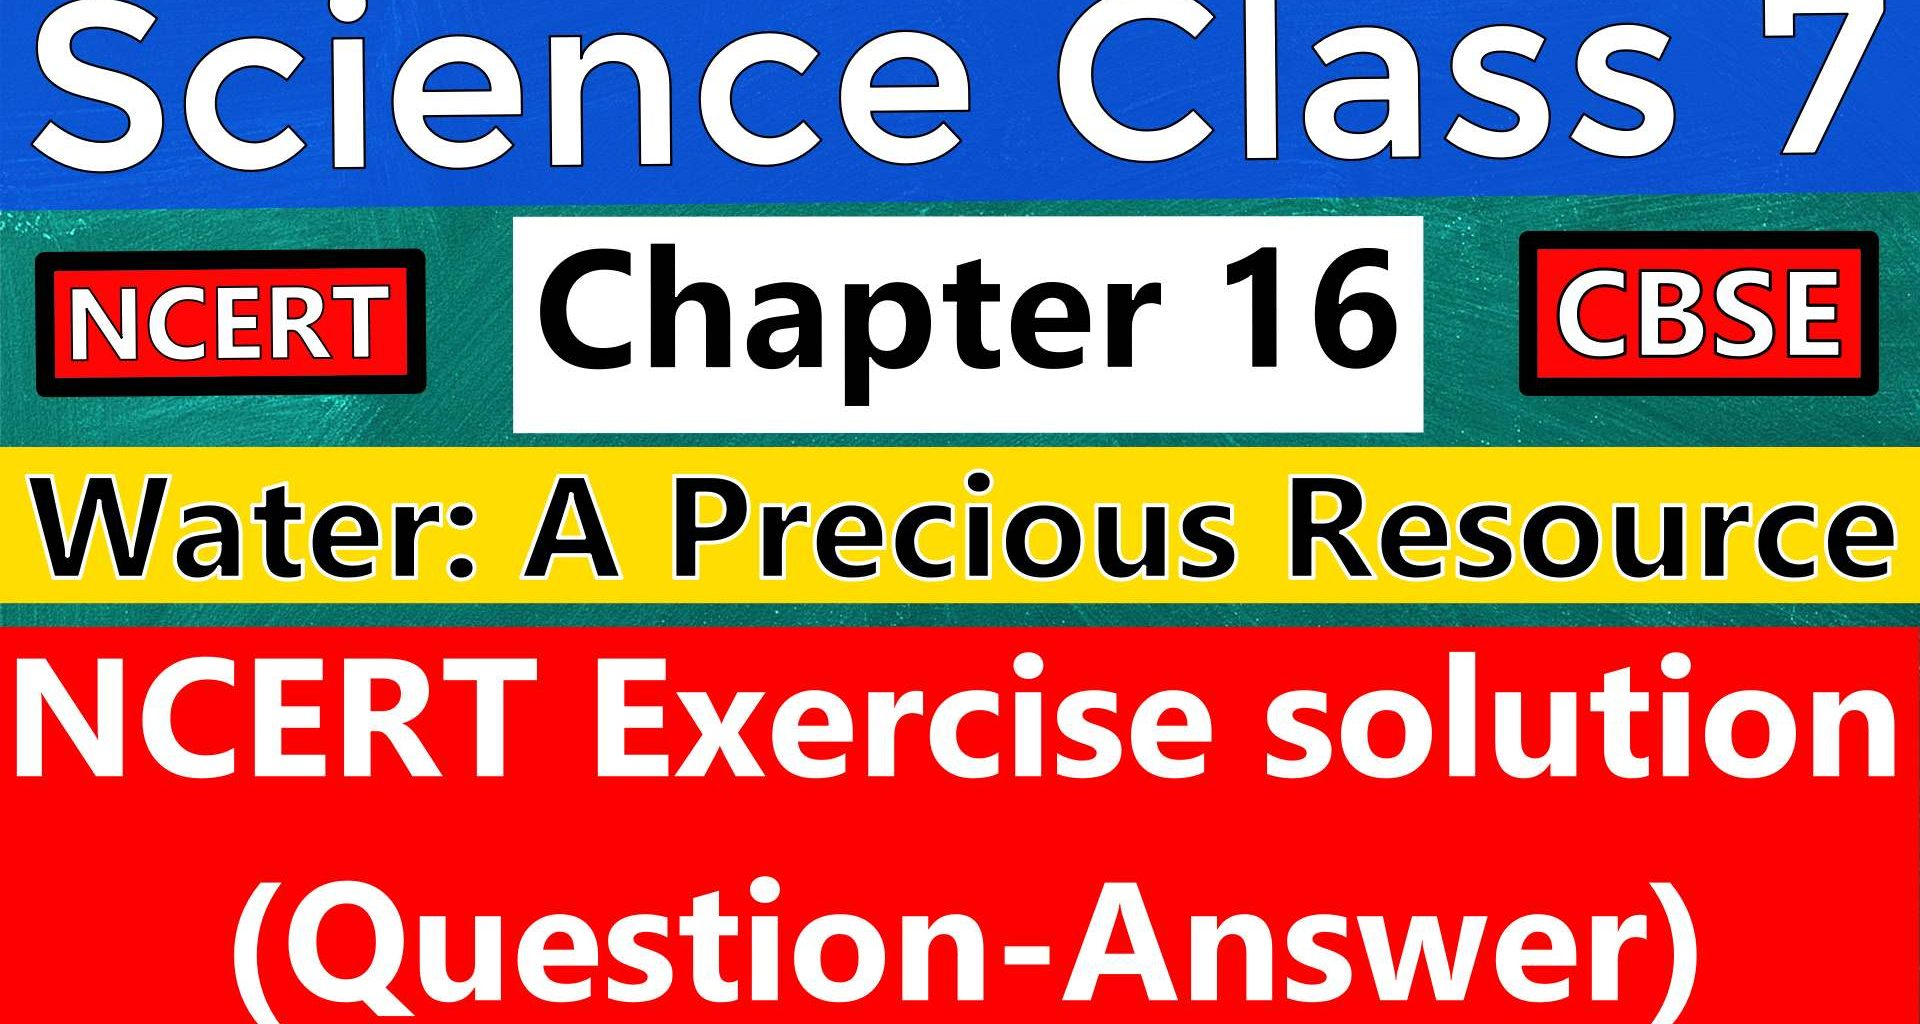 Science Class 7 Chapter 16 -Water A Precious Resource - NCERT Exercise Solutions (Question-Answer)